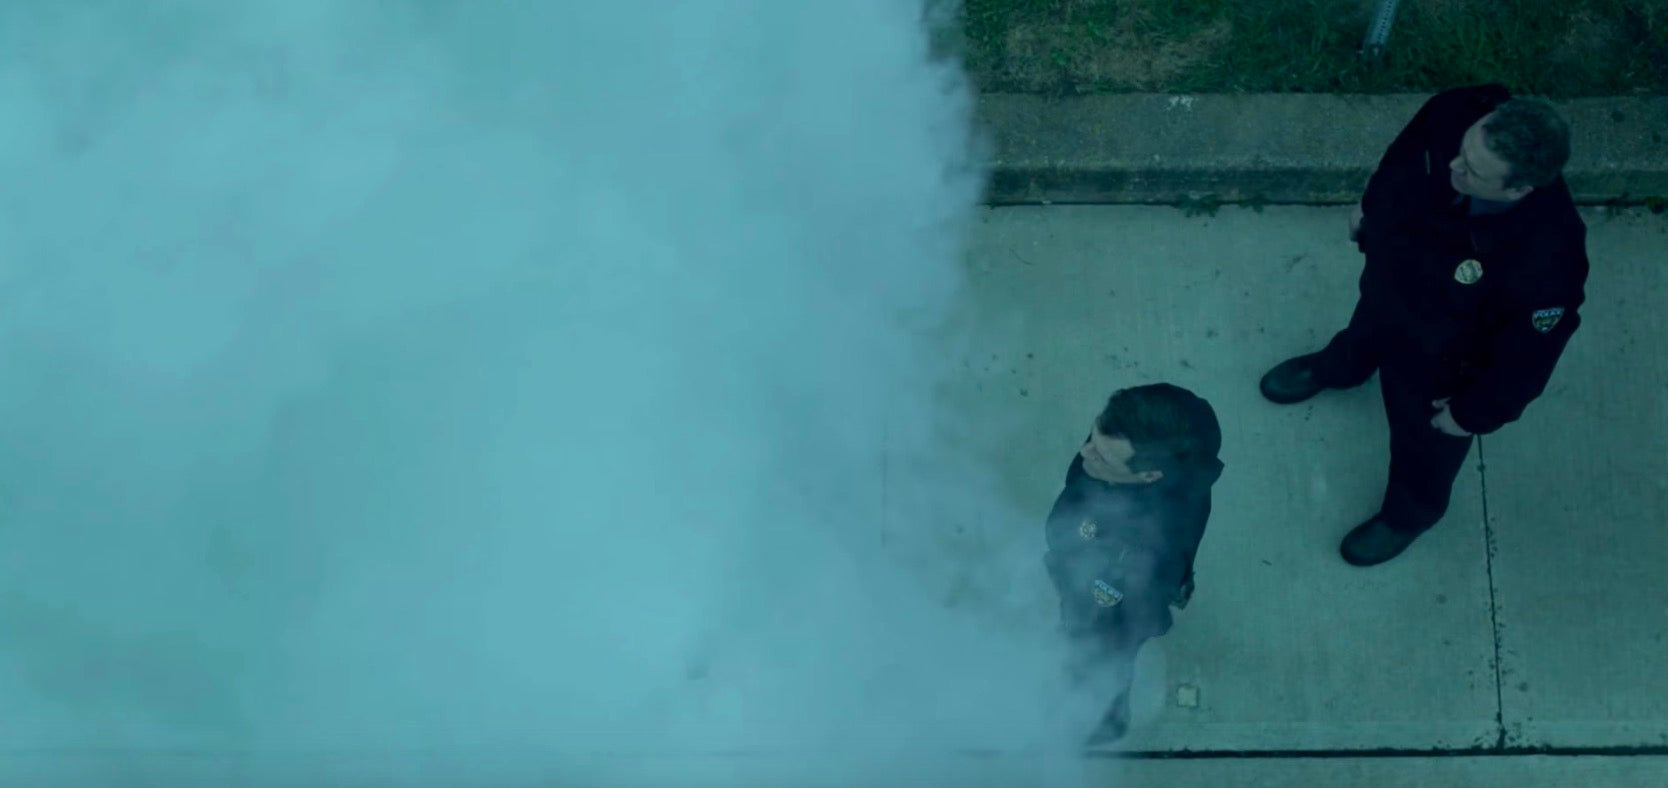 The First Trailer For The Mist TV Show Expands On Stephen King's Story